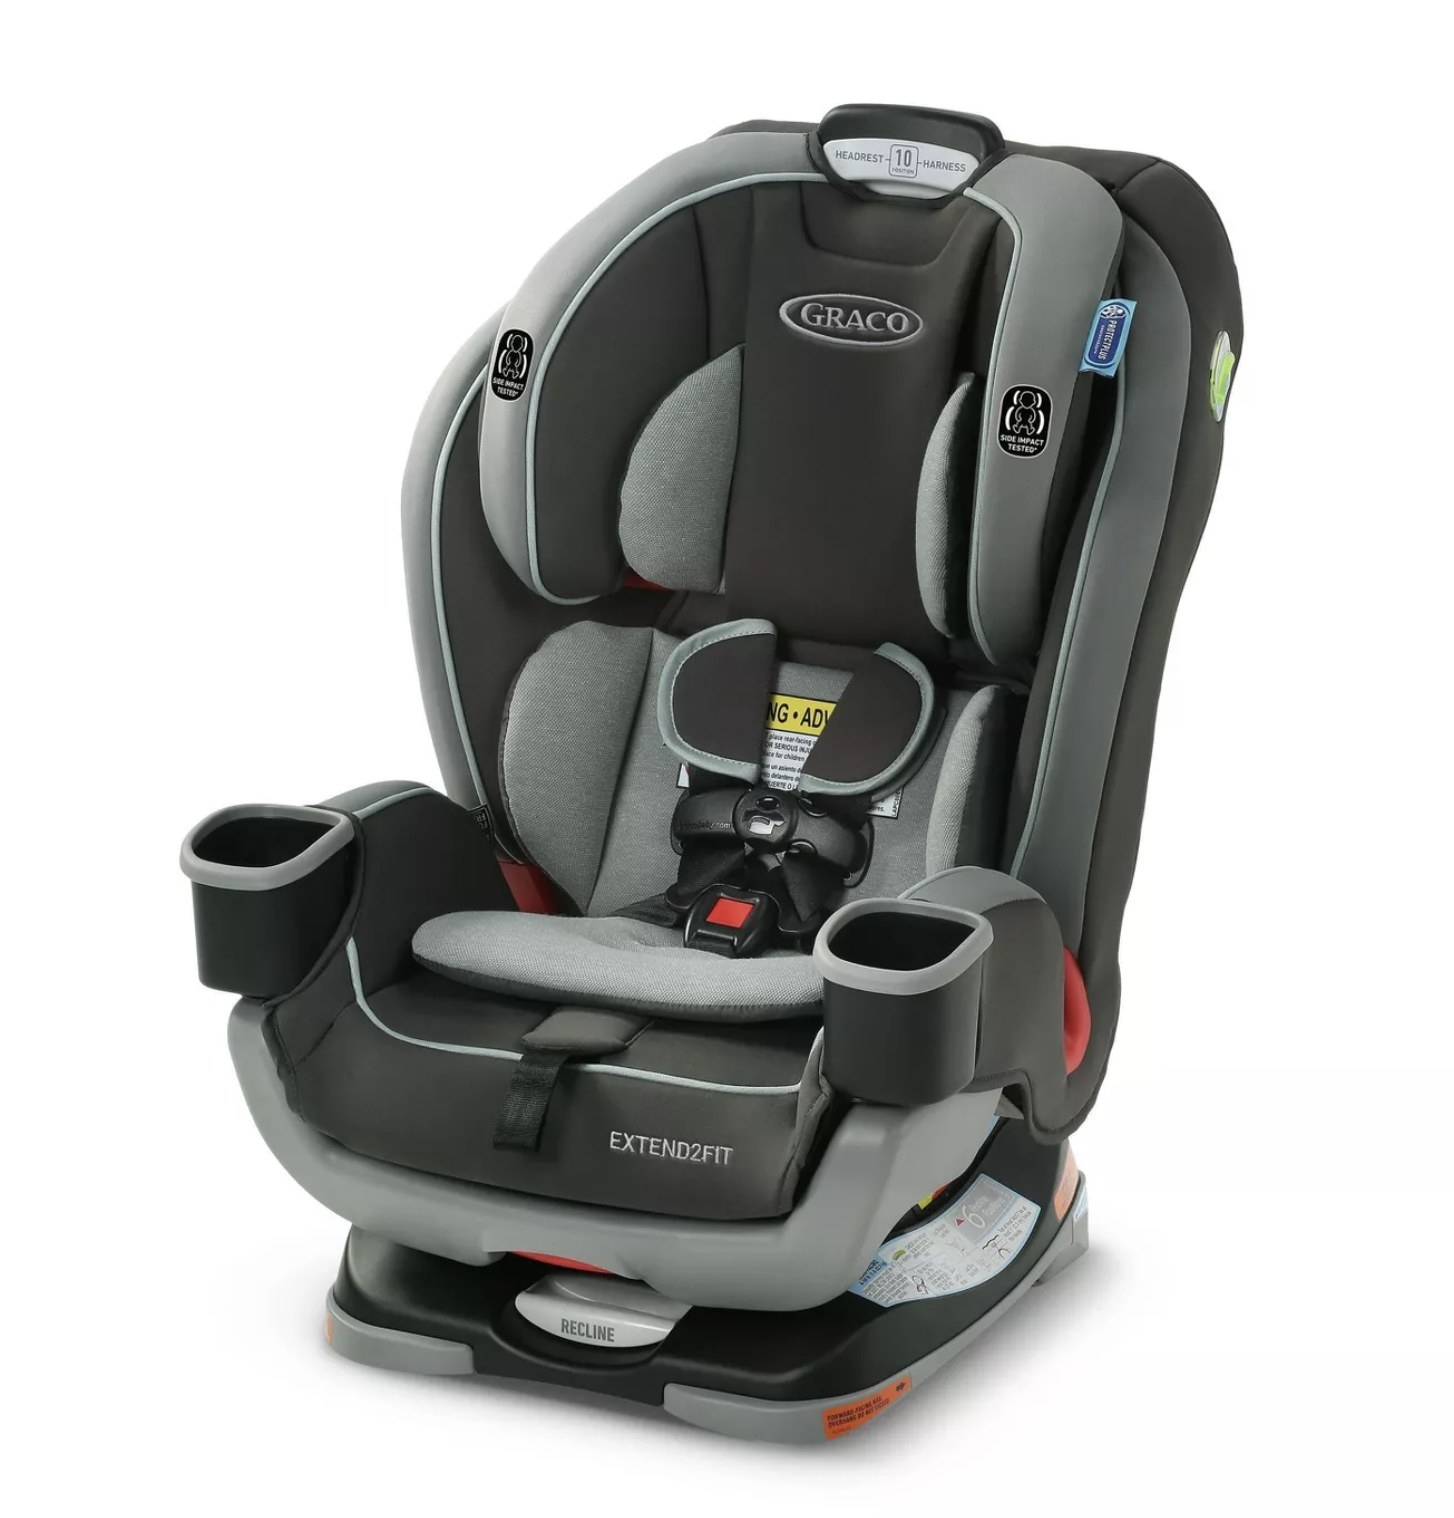 A black 3-in-1 convertible car seat